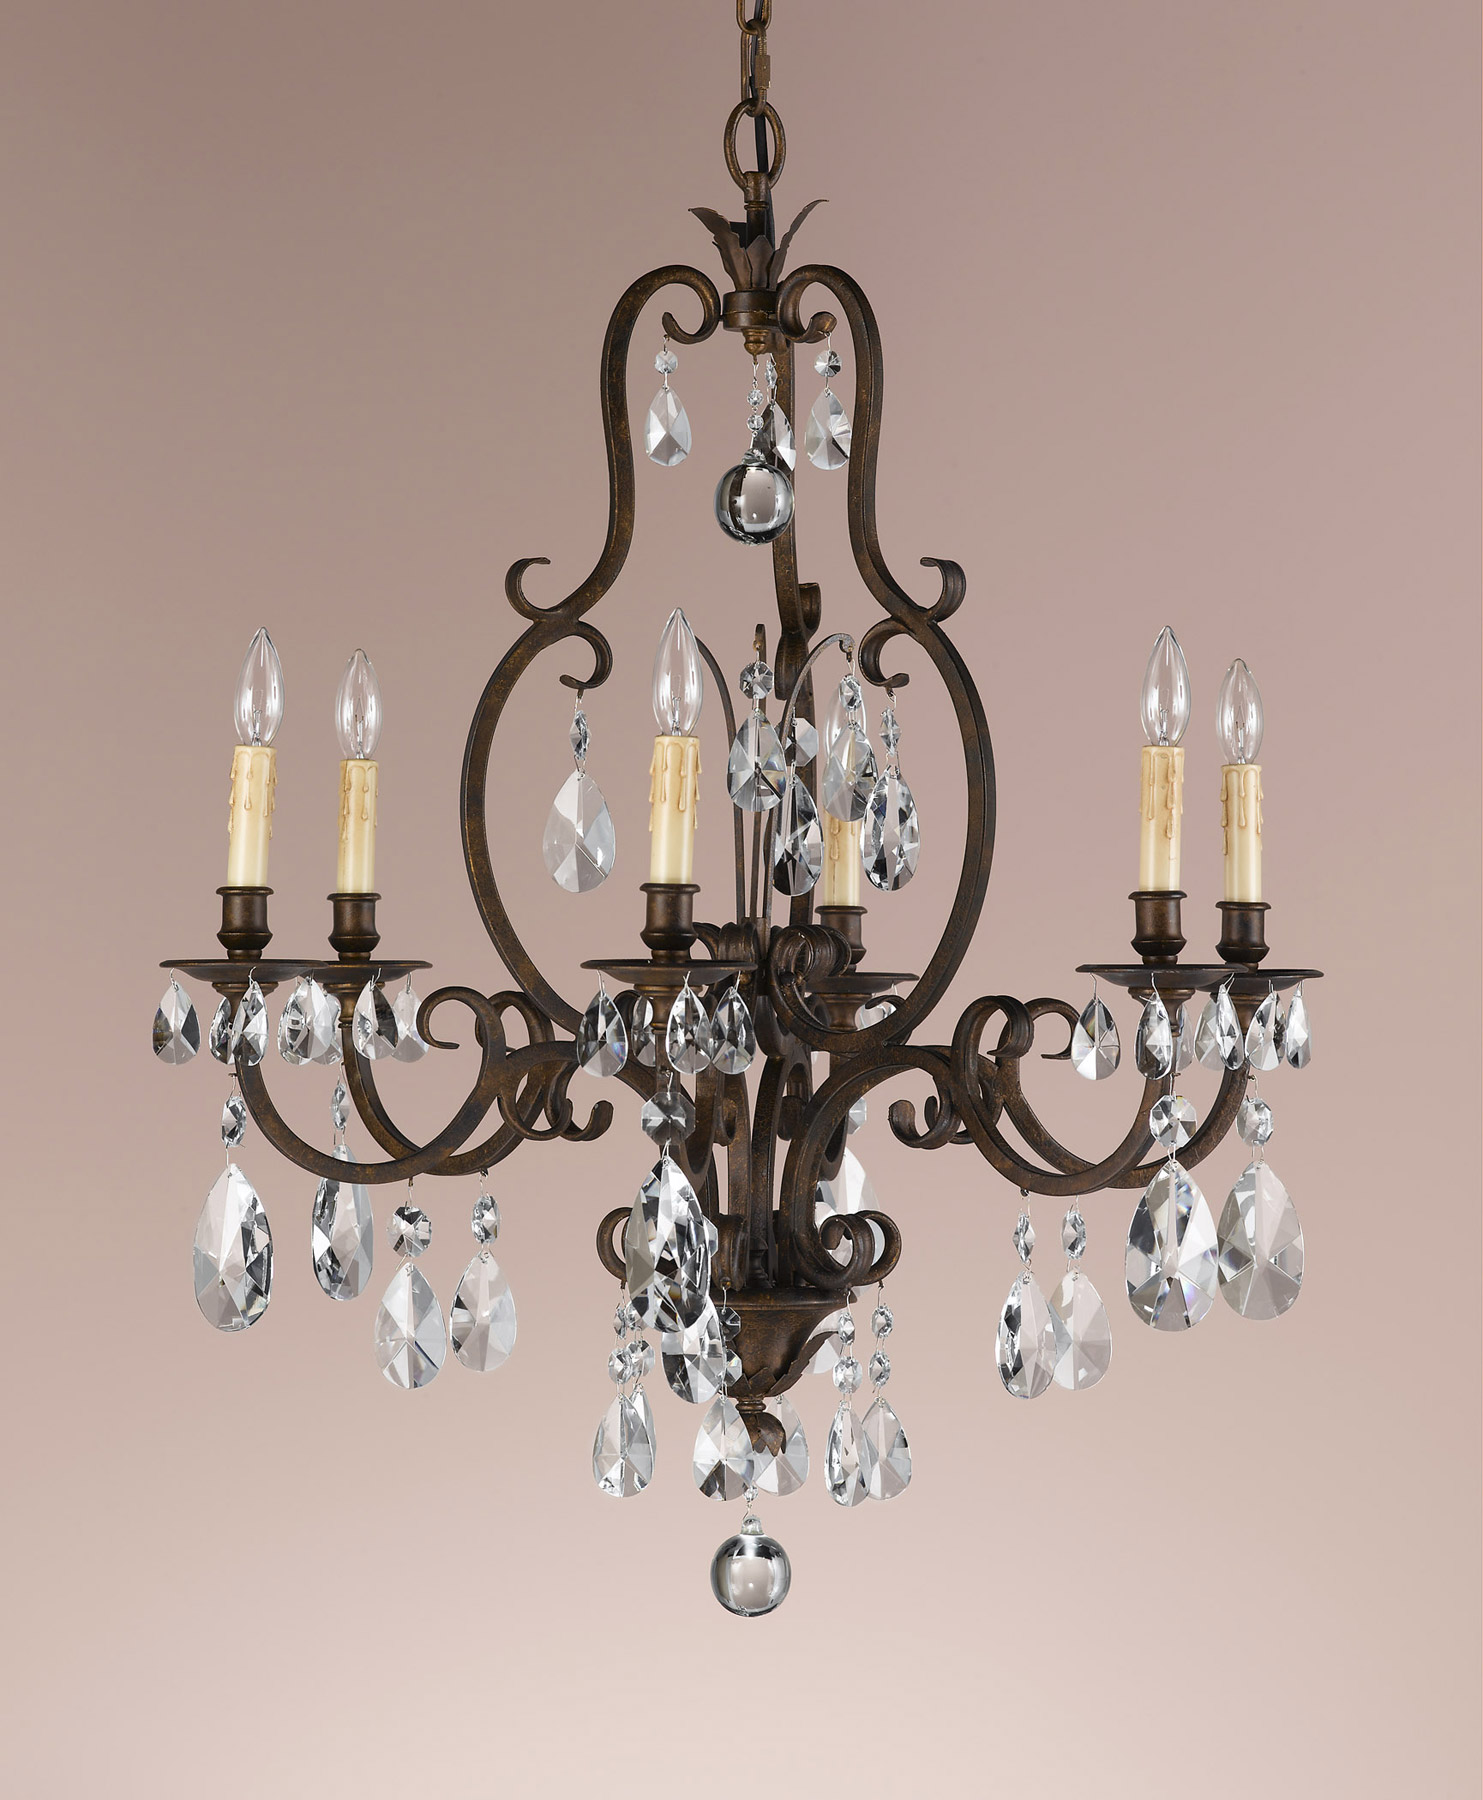 F22286ats crystal salon maison six light chandelier feiss f22286ats crystal salon maison six light chandelier aloadofball Image collections